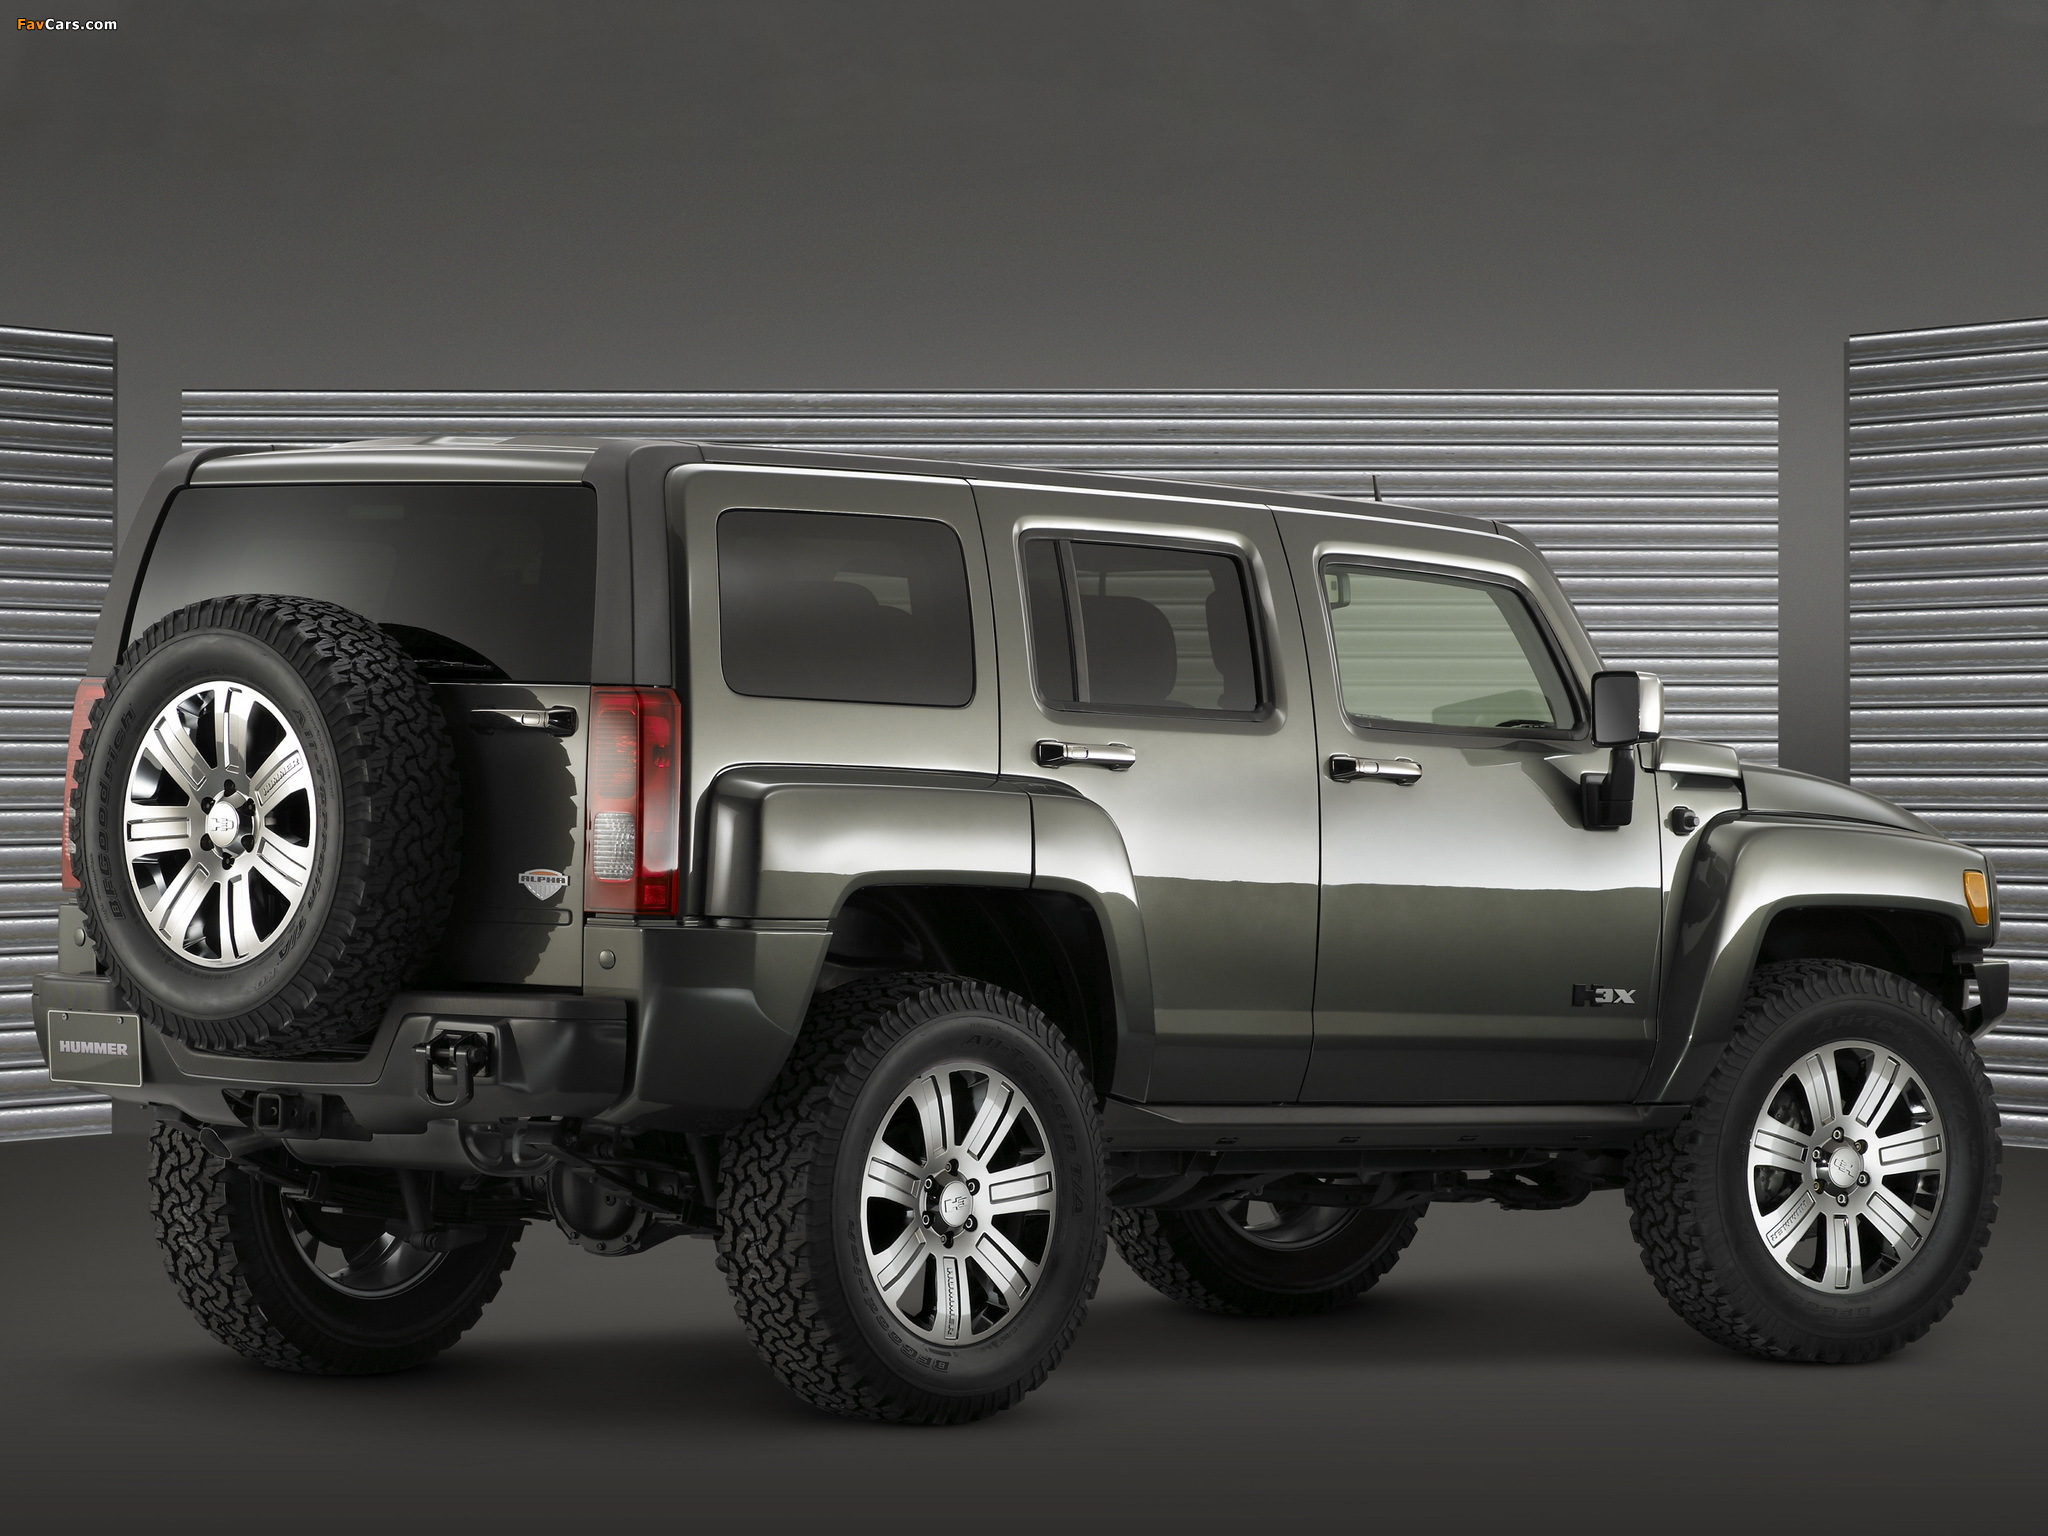 Hummer H3x Concept 2006 wallpapers (2048 x 1536)